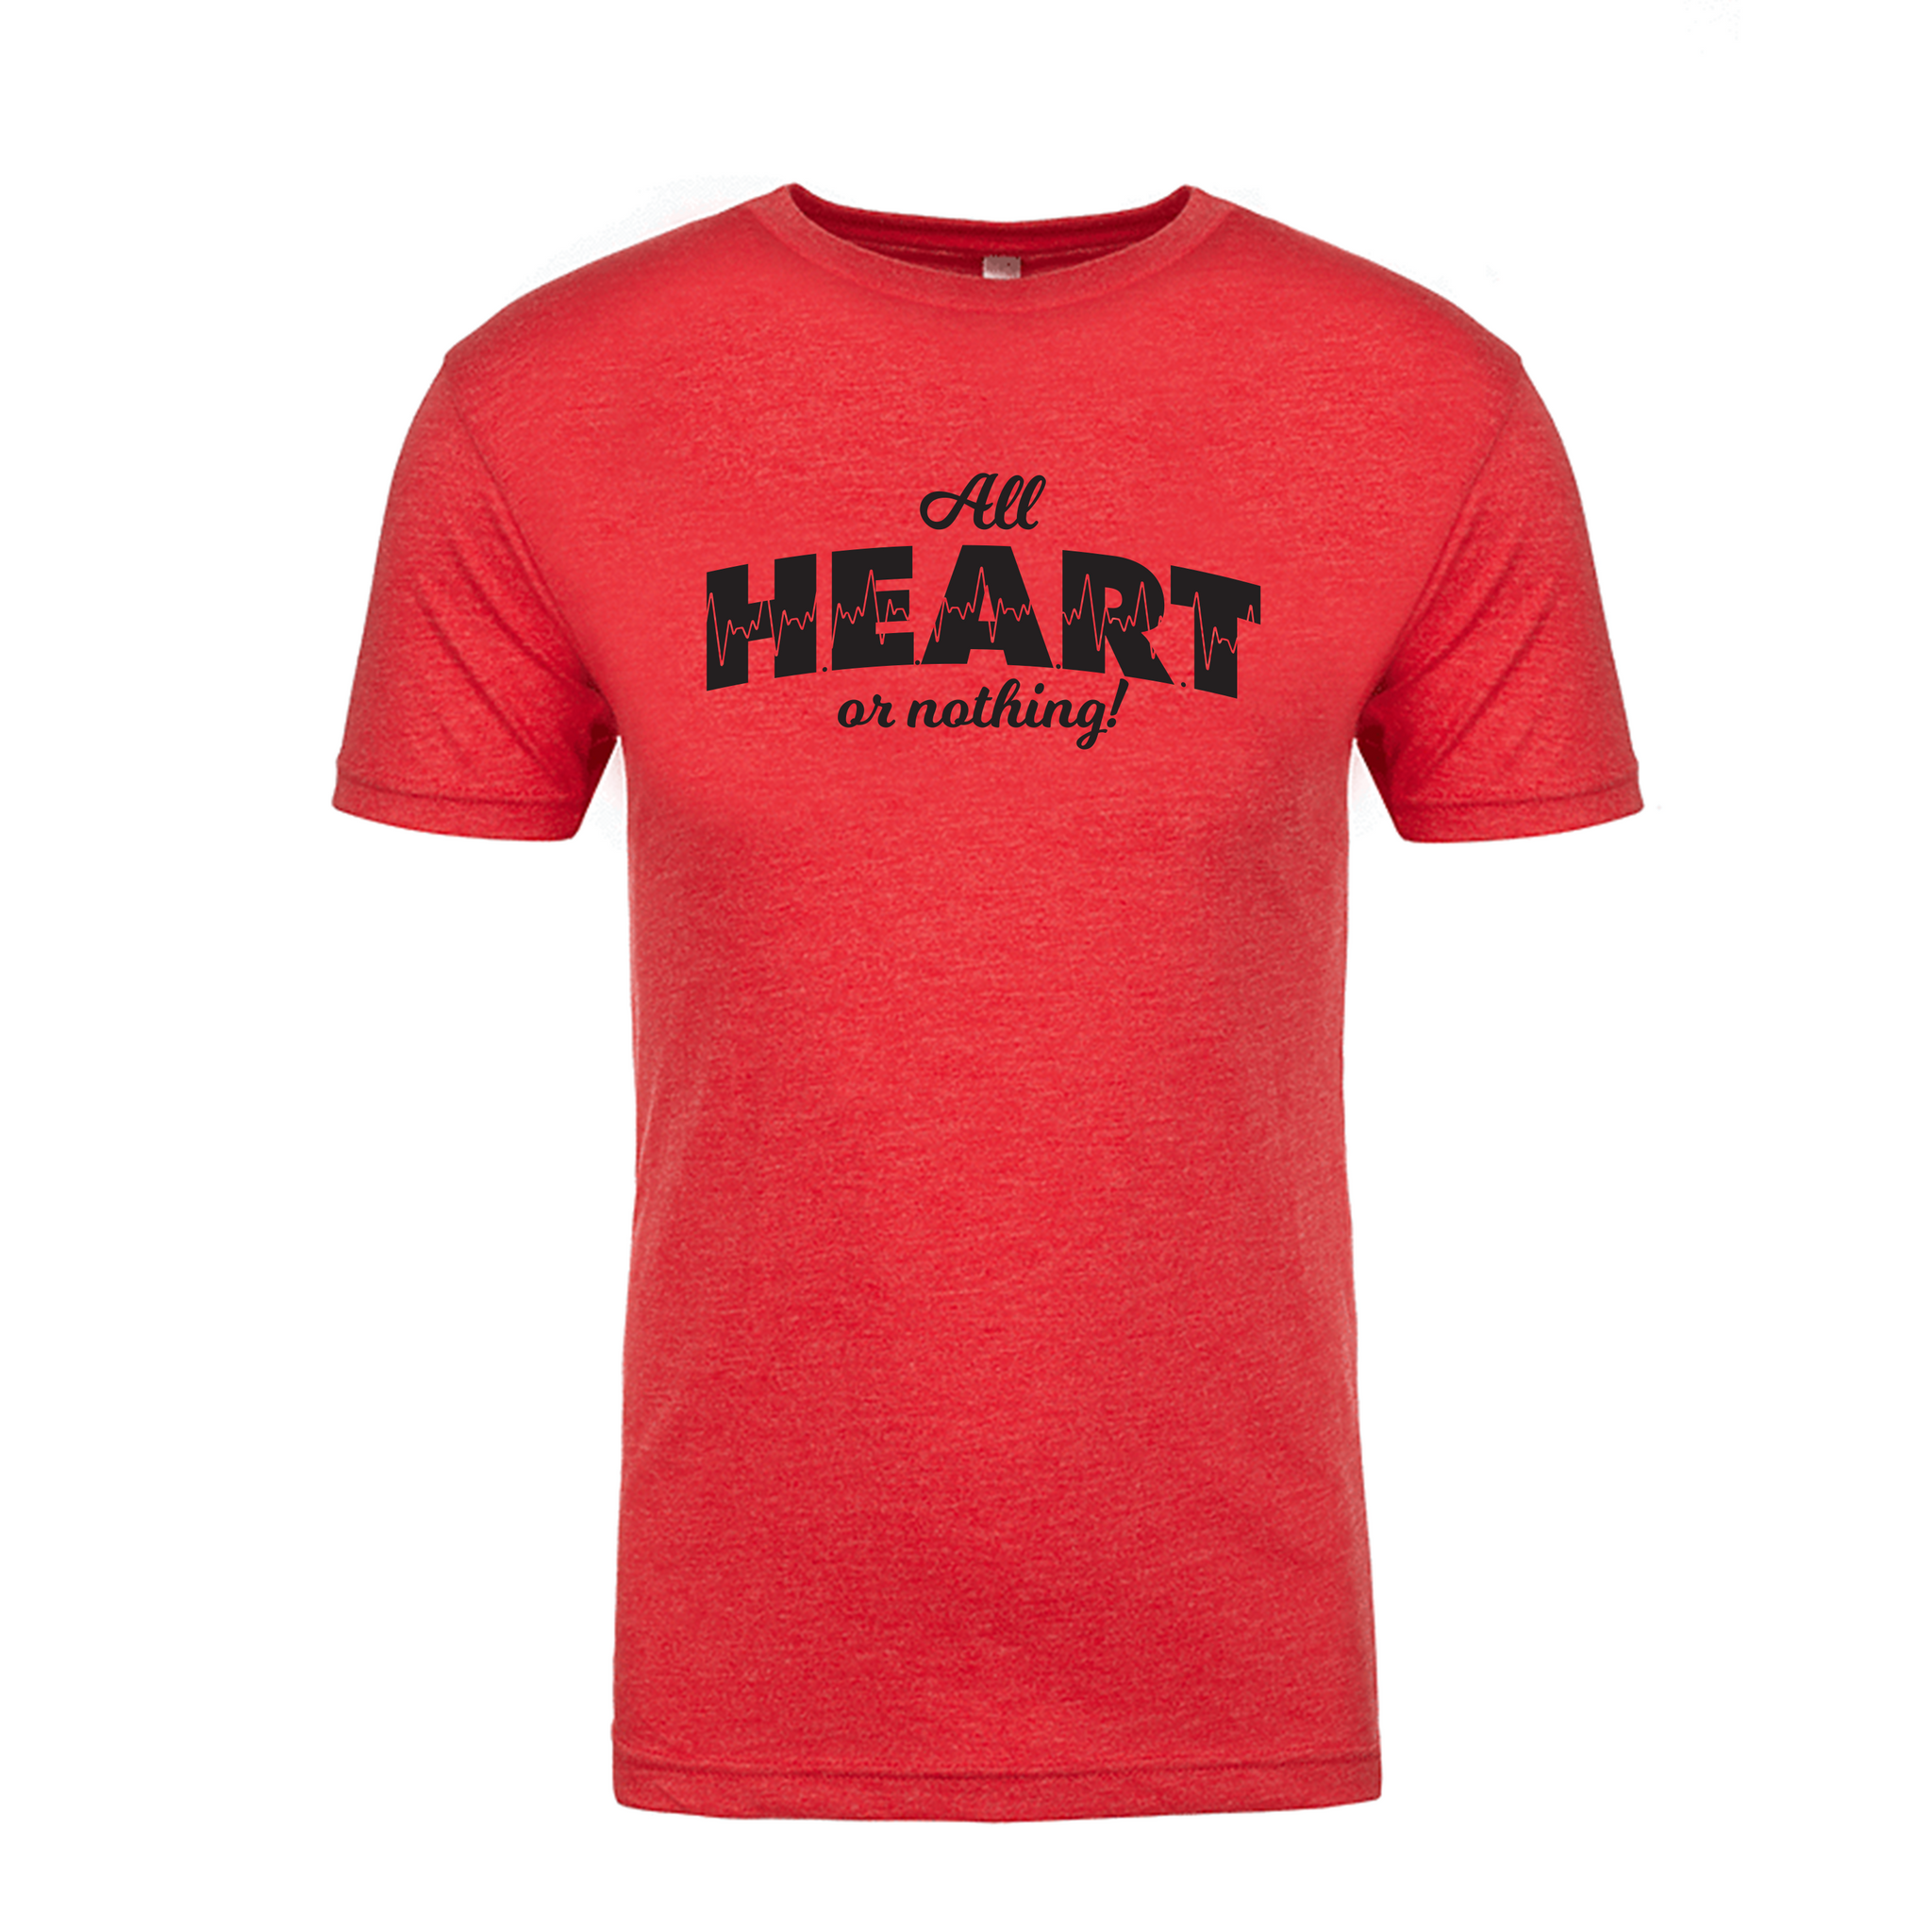 ALL H.E.A.R.T. OR NOTHING! Red Tri-Blend T